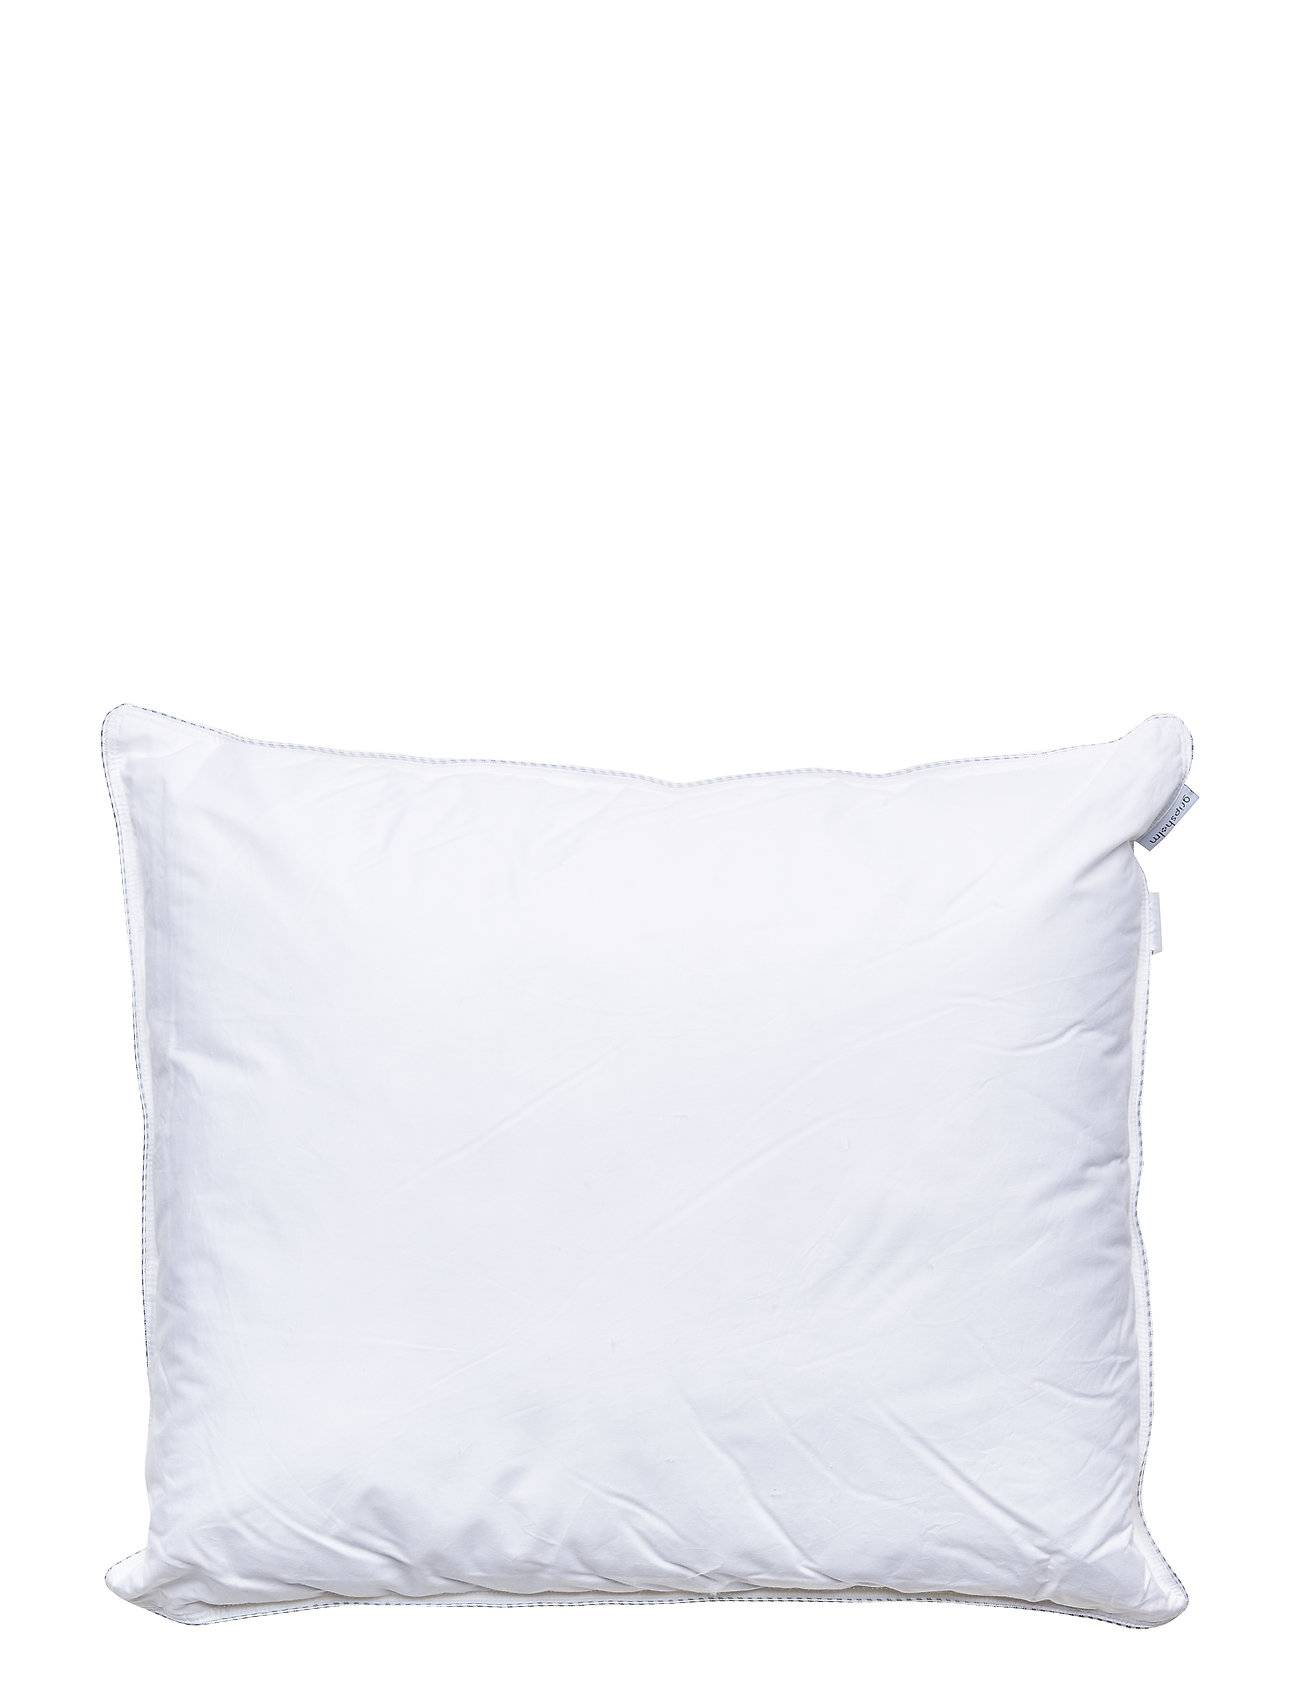 Gripsholm Pillow Nelson Low